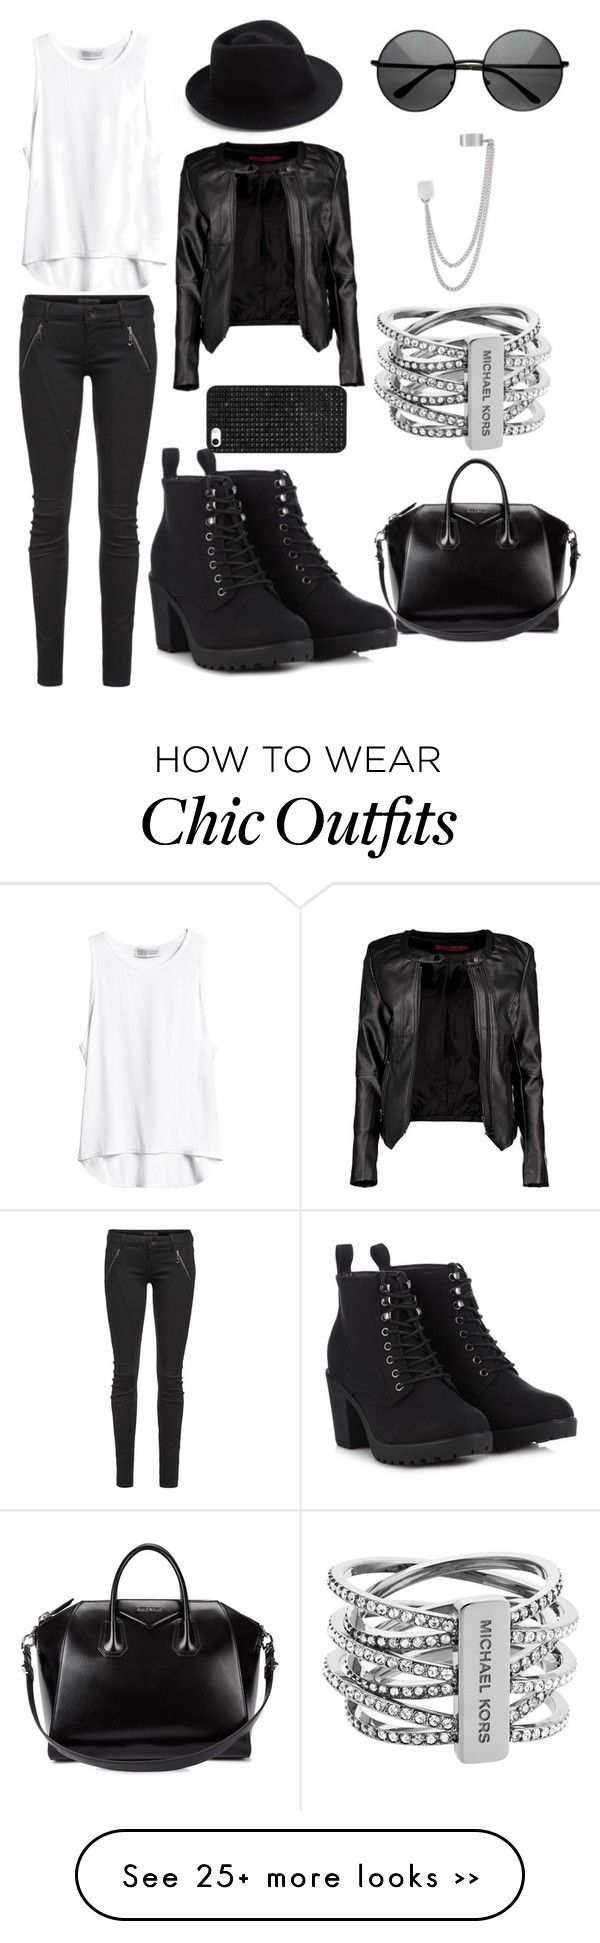 """""""Rocker chic . This edgy look is perfect for fall"""" by liyaalston on Polyvore featuring Boohoo, Givenchy, Michael Kors, French Connection, Letitia, Call it SPRING, Eugenia Kim and BaubleBar"""